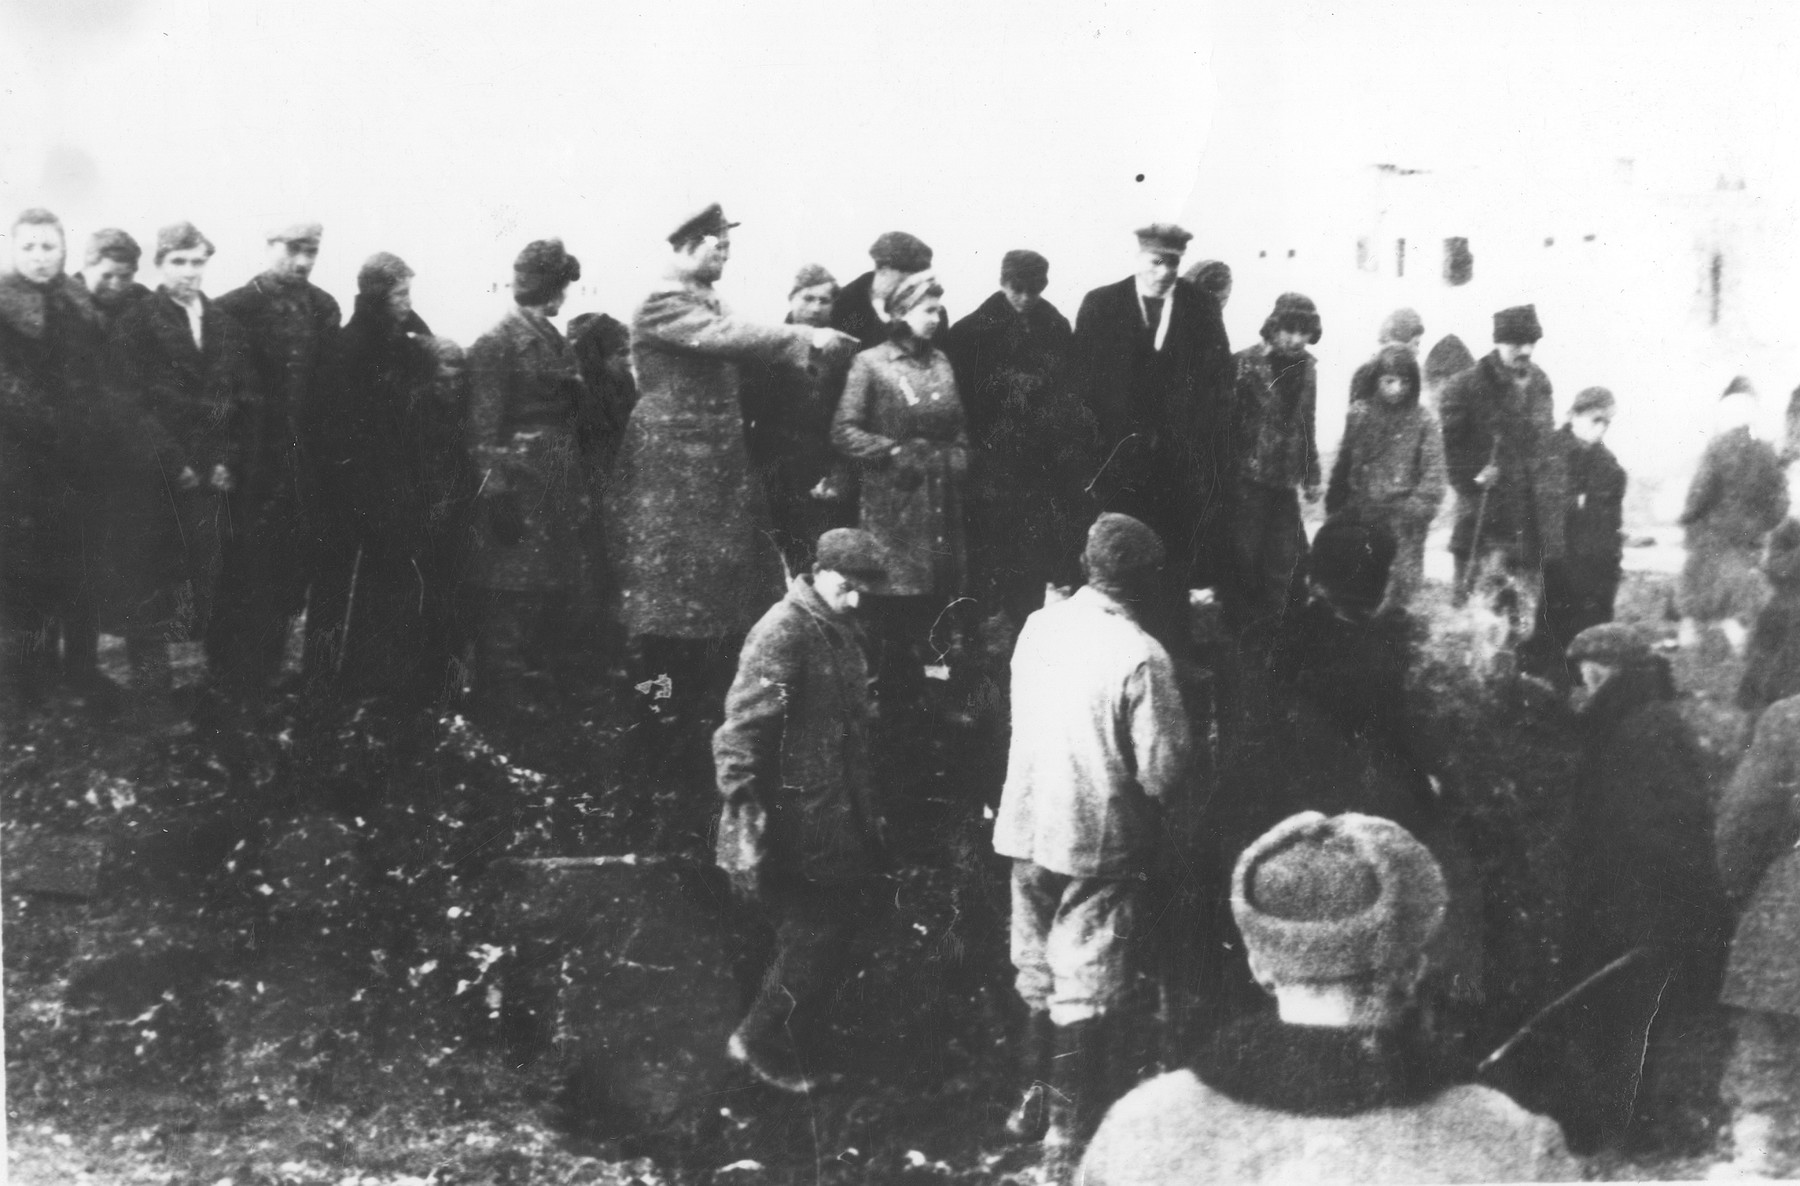 A crowd of people observes the exhumation of a mass grave in the Jewish cemetery of Stanislawow.